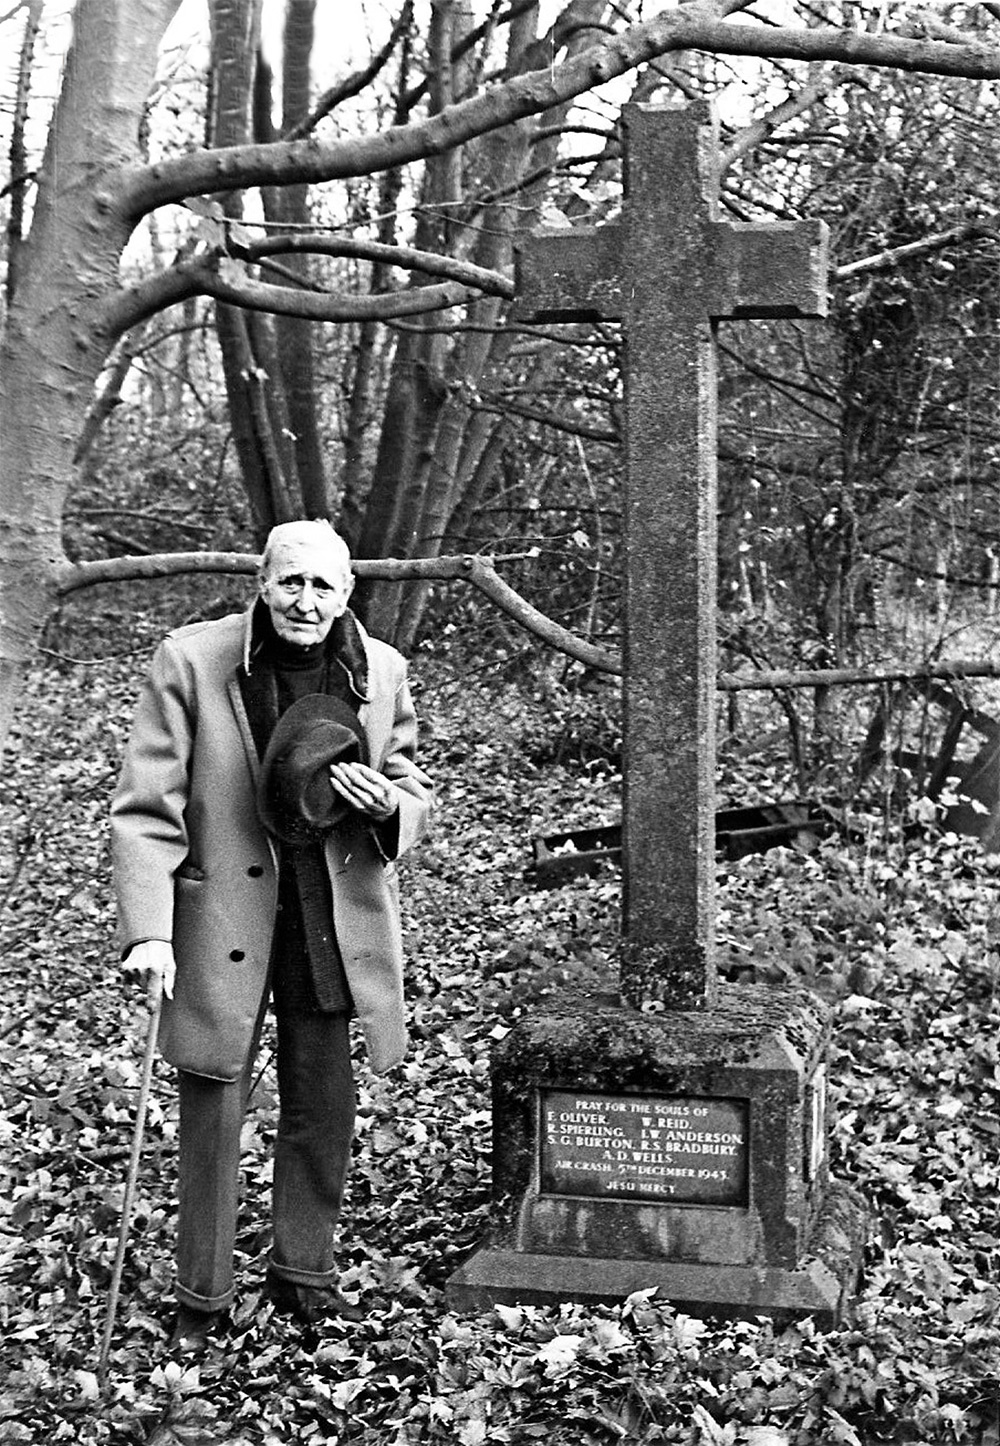 Mr Sidney Smith at the Scallows Wood Memorial in 1984